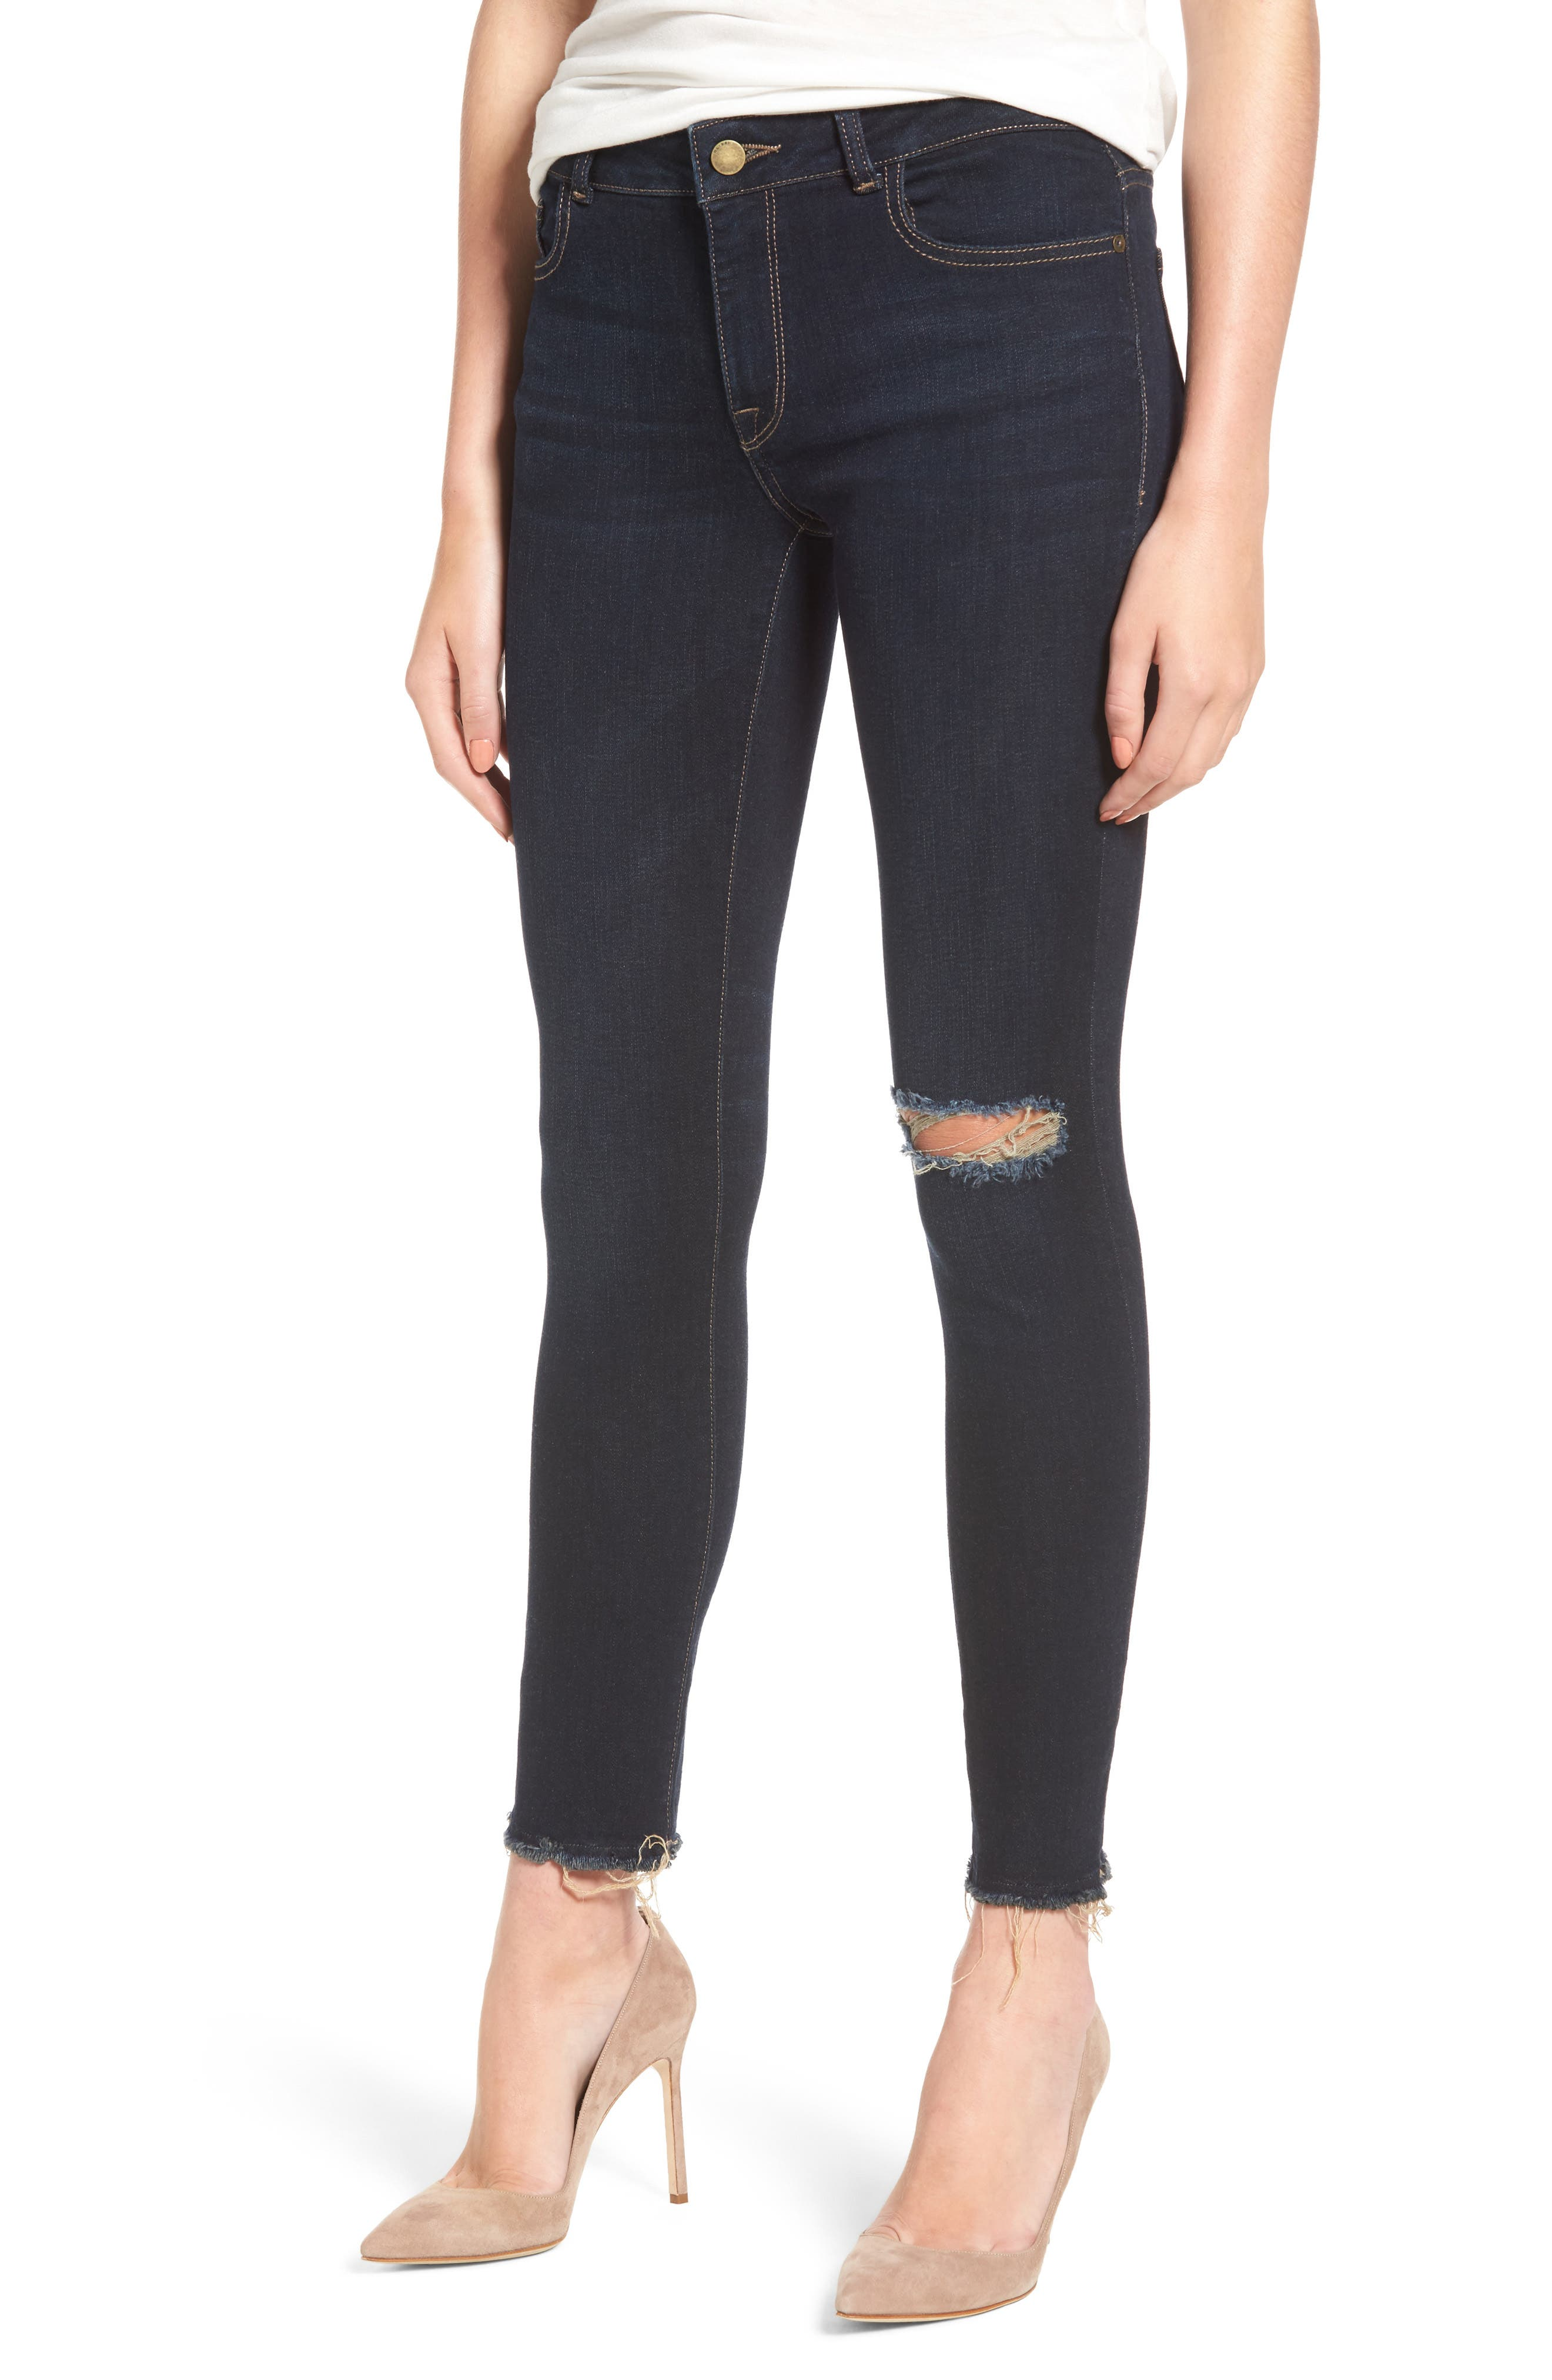 Alternate Image 1 Selected - DL1961 Margaux Instasculpt Ripped Ankle Skinny Jeans (Halsey)